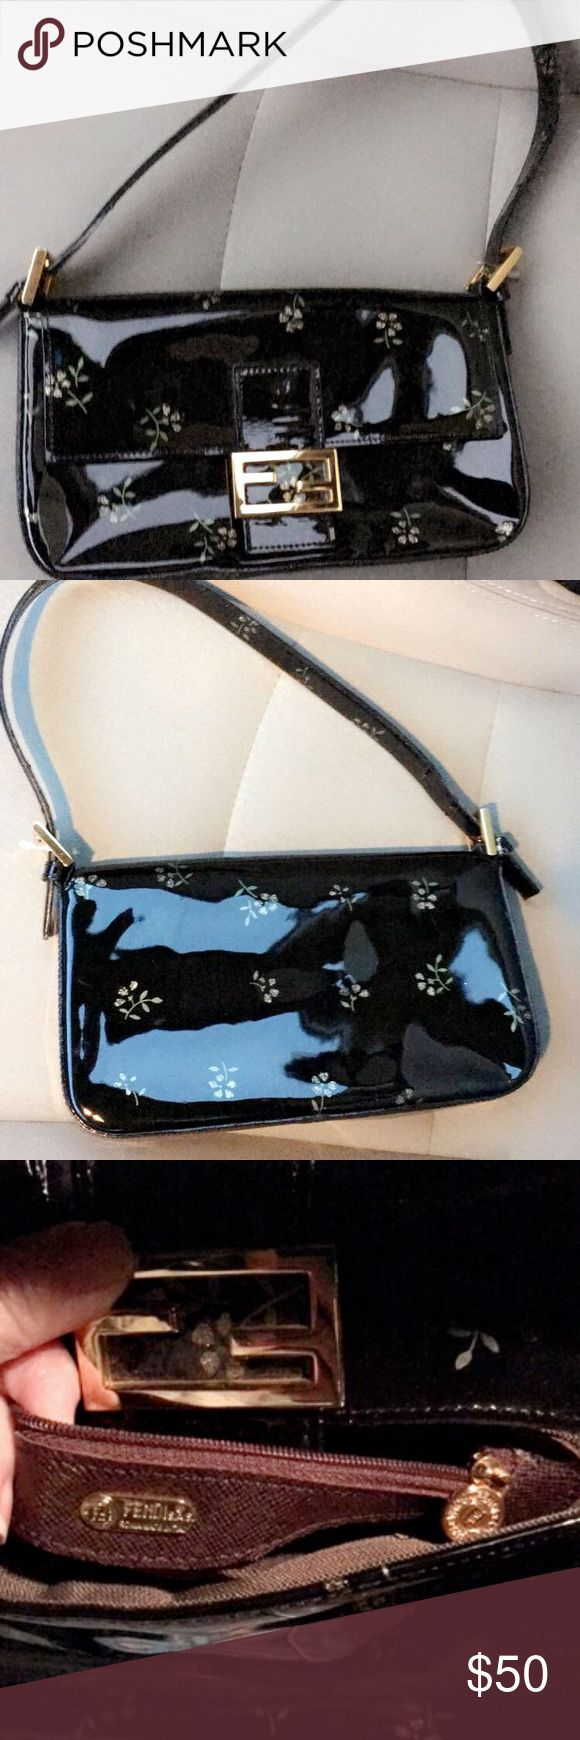 Fendi Black & Gold Patent Pochette Bag Super cute bag that can fit a wallet, cell phone and make up. Has front snap closure and one interior pocket. The exterior design is patent with gold glitter floral/flower design. Excellent condition as I've never used it and is just sitting pretty in my closet.  I couldn't find the serial number so the price reflects AUTH.  Please check out my other items like Vuitton, Tory Burch, Gucci, Jimmy Choo, etc. Bags Mini Bags